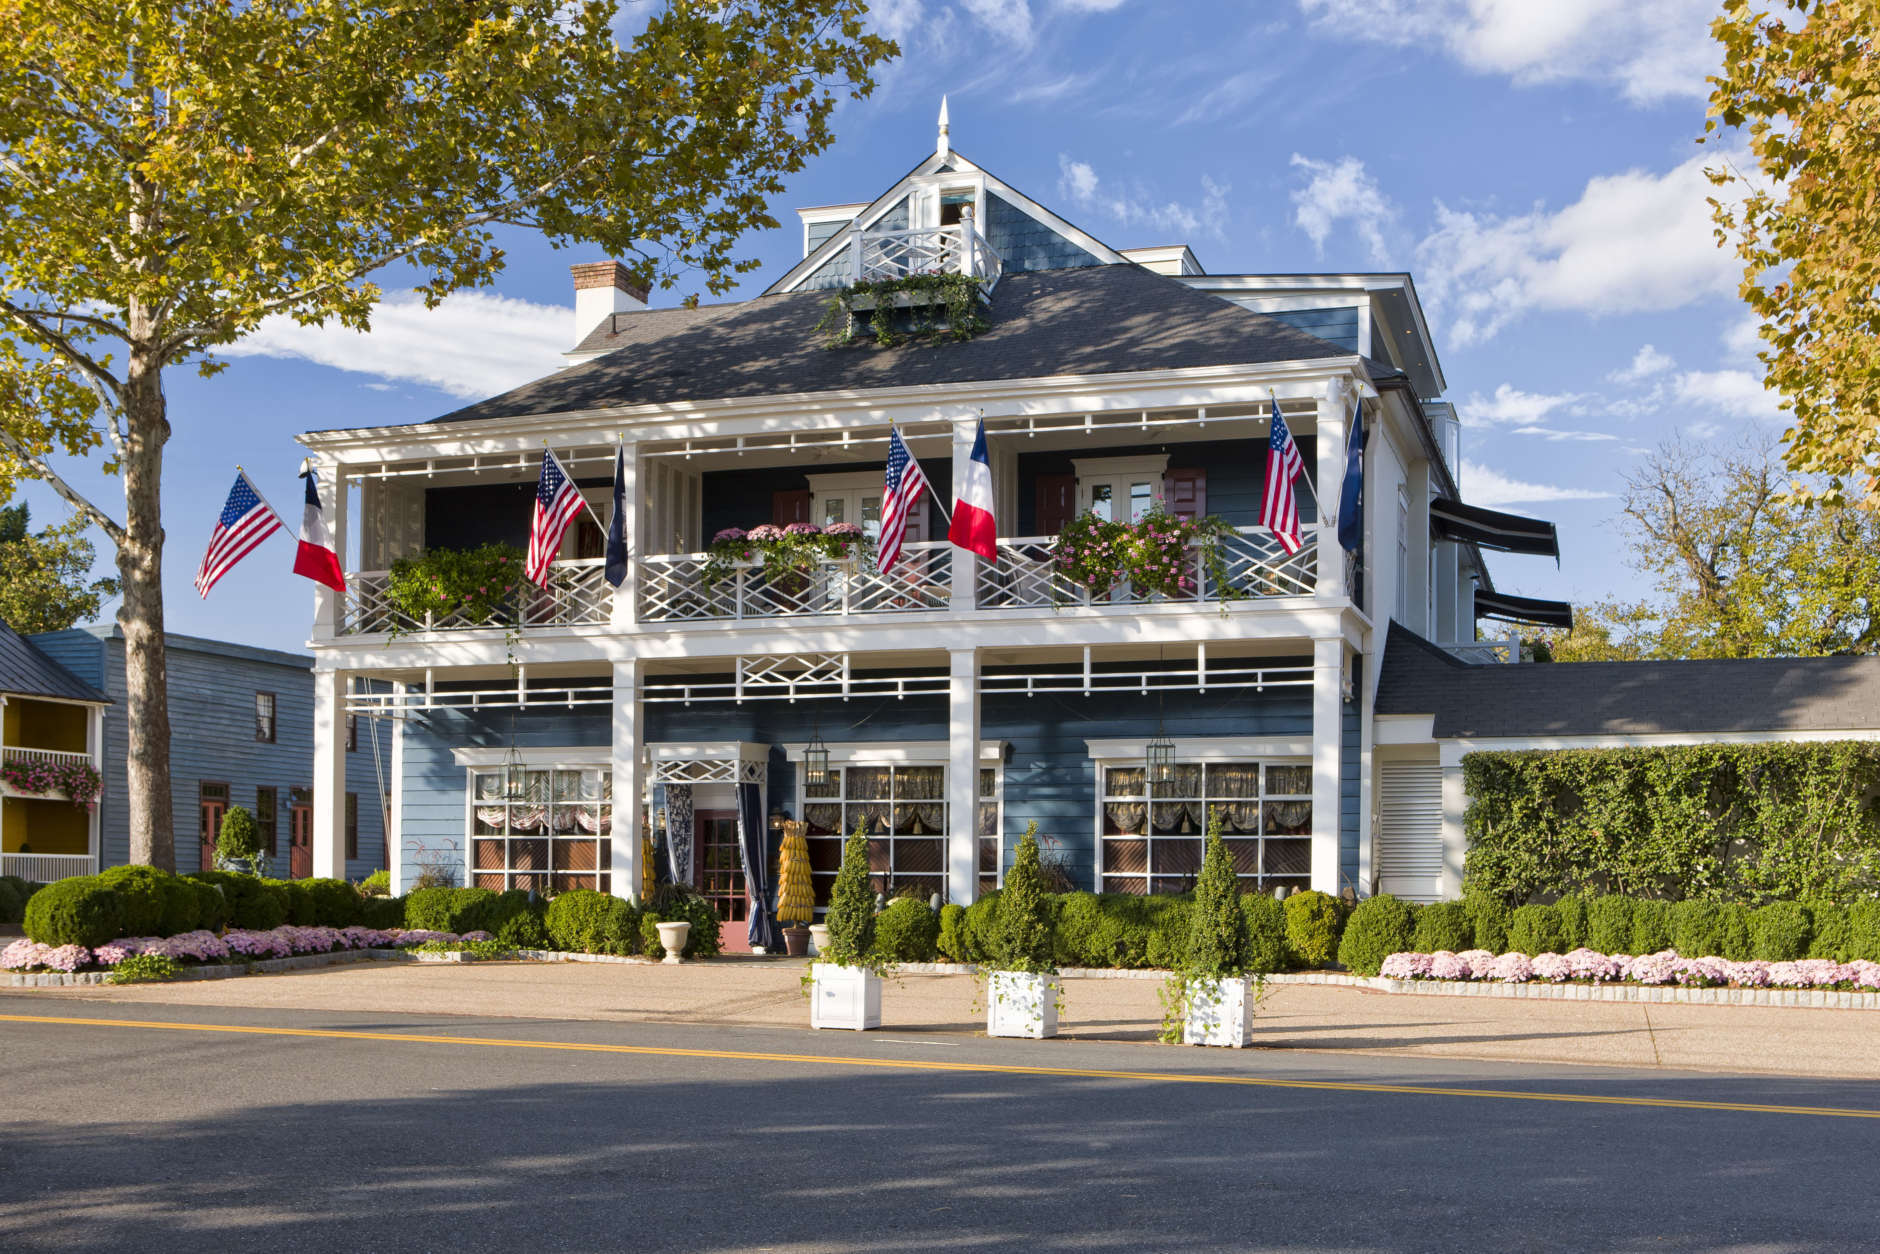 The Inn at Little Washington is known by critics and clientele as one of the most luxurious destinations in the country. But 40 years ago, it was far from fancy. What serves as the main building today was once an old garage with a junkyard on one side and the town dump in the back. (©2012 Gordon Beall/Gordon Beall)